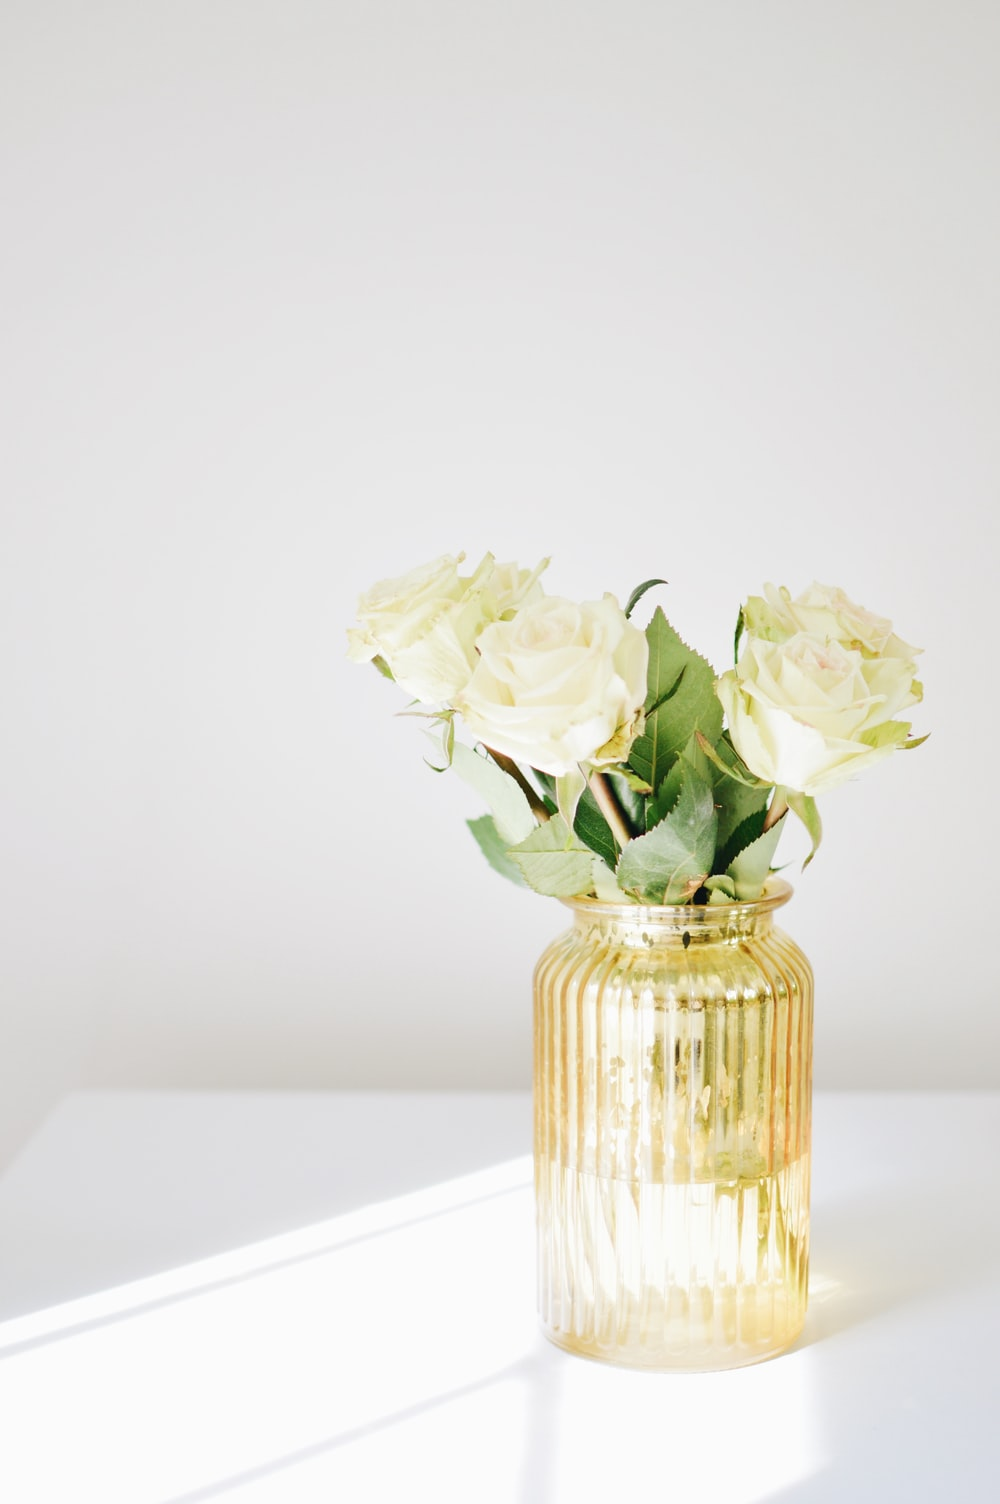 white rose centerpiece on white wooden table